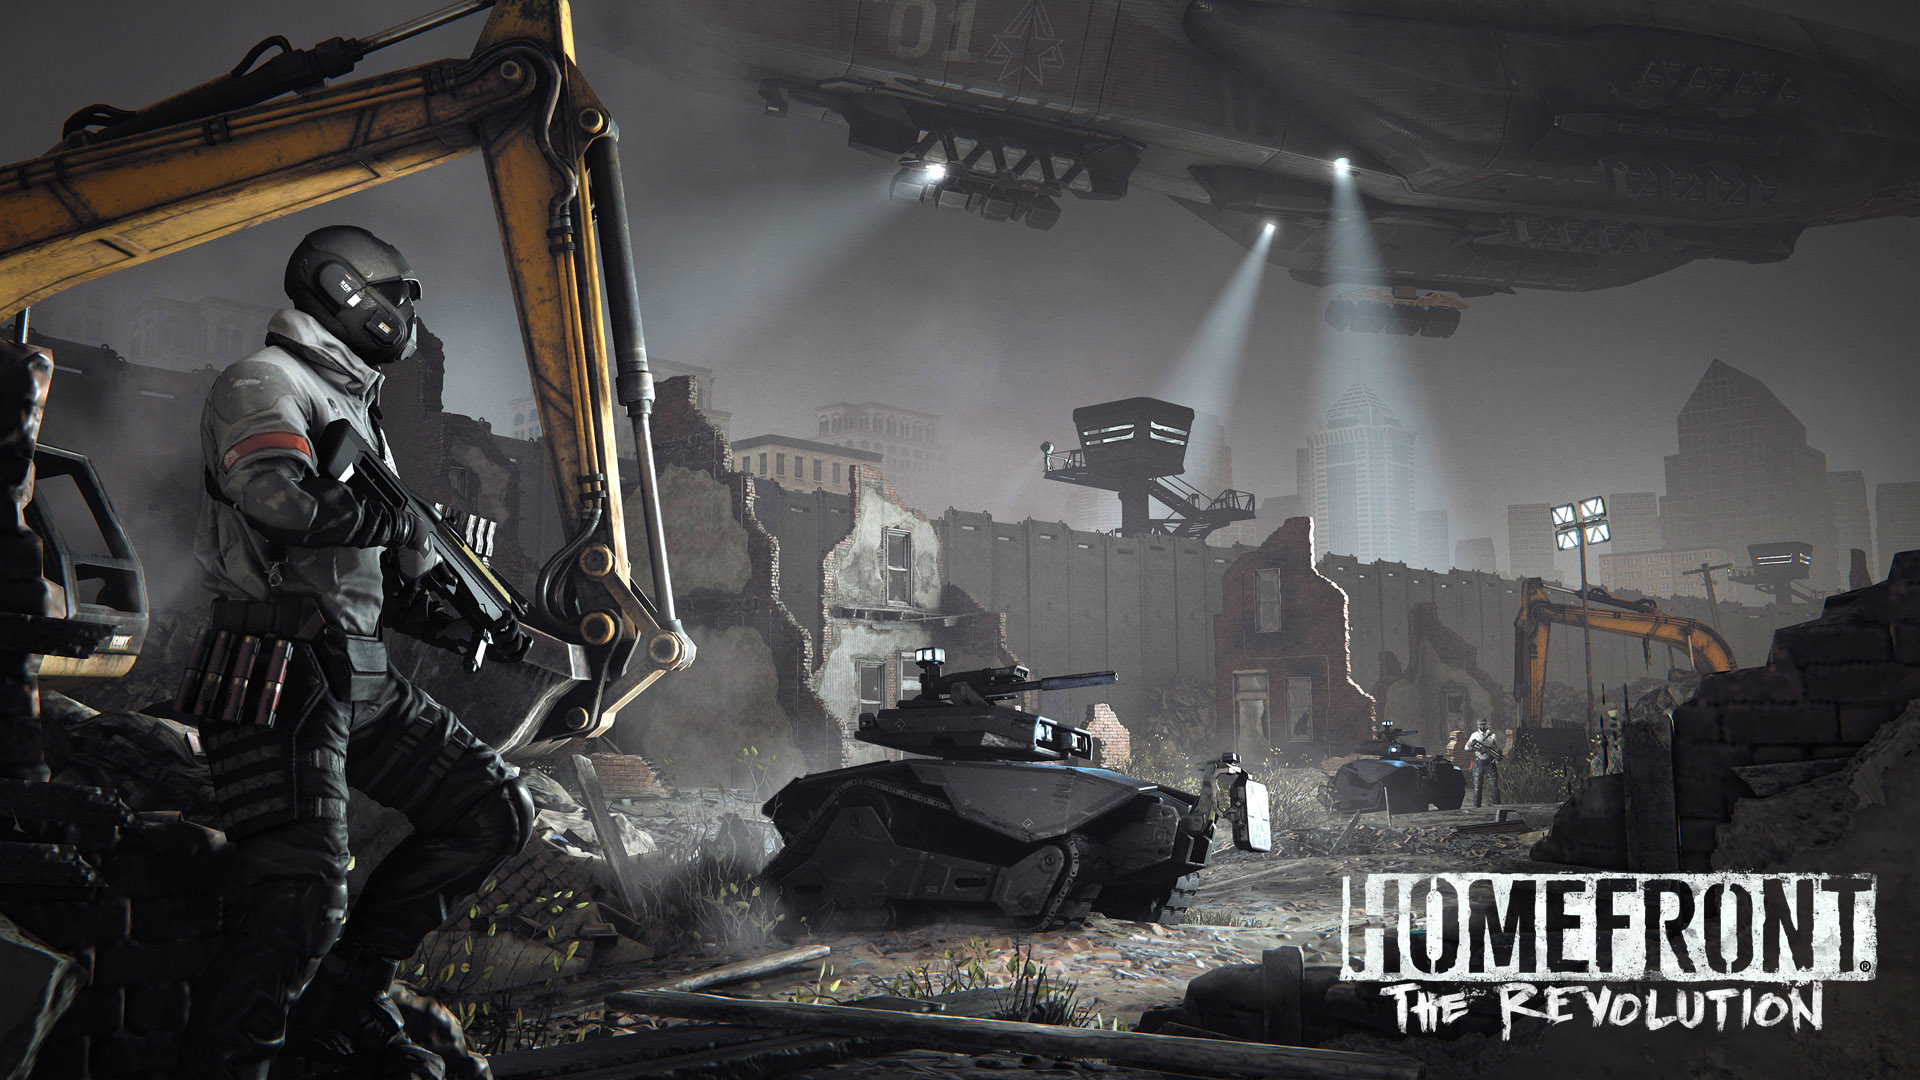 Download Best Video Game Homefront The Revolution 2015 Download Game 1920x1080